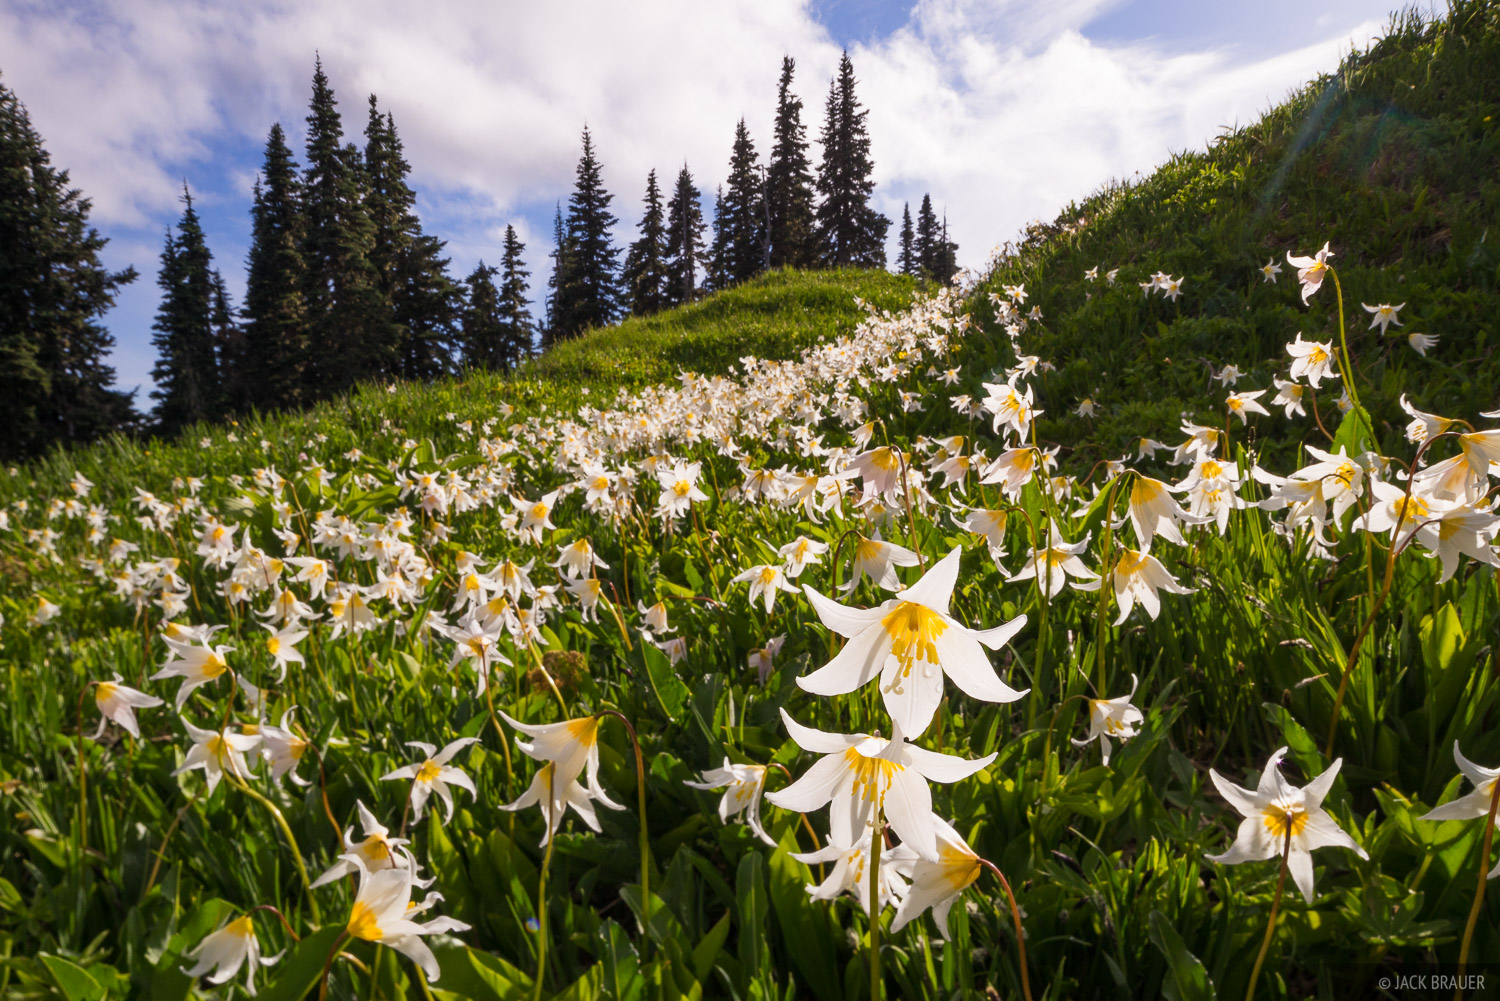 Olympic Peninsula, Sol Duc, Washington, wildflowers, Olympic National Park, avalanche lilies